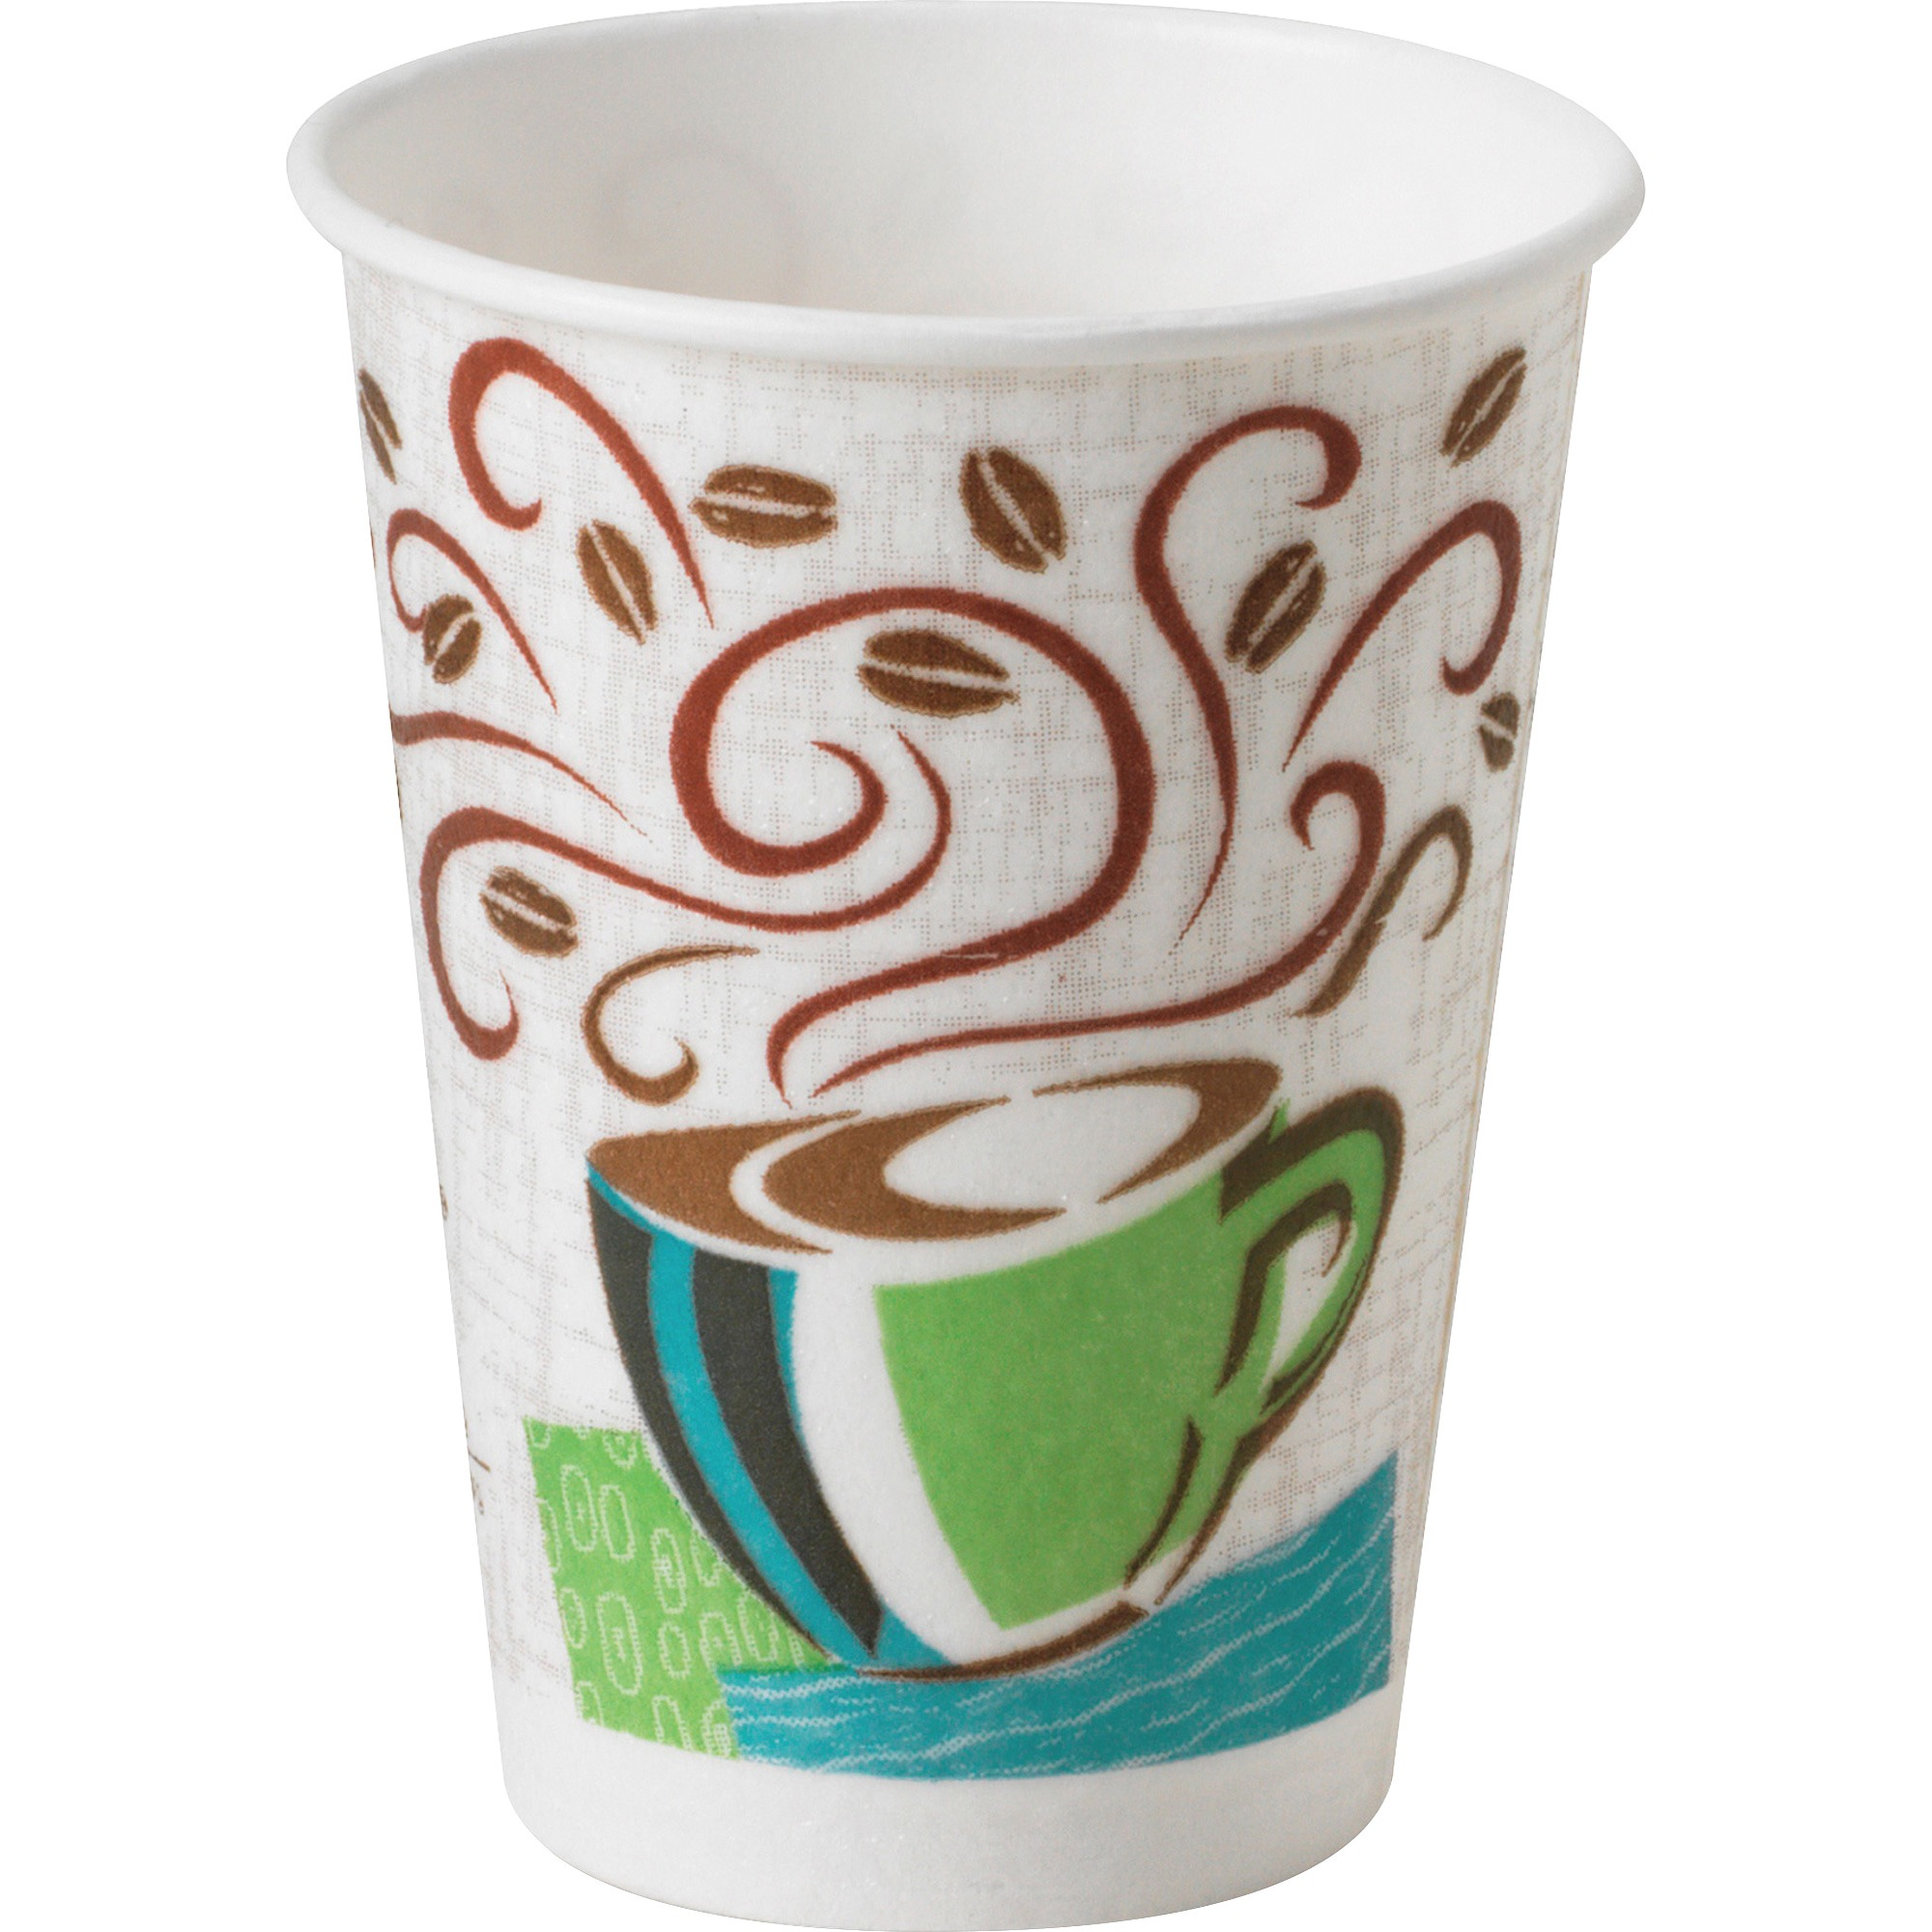 Dixie PerfecTouch® 8oz Insulated Paper Hot Cups, Disposable Coffee Cups, 5338CD, Coffee Haze, 20 Sleeves of 50 Cups (1000 Cups Total)